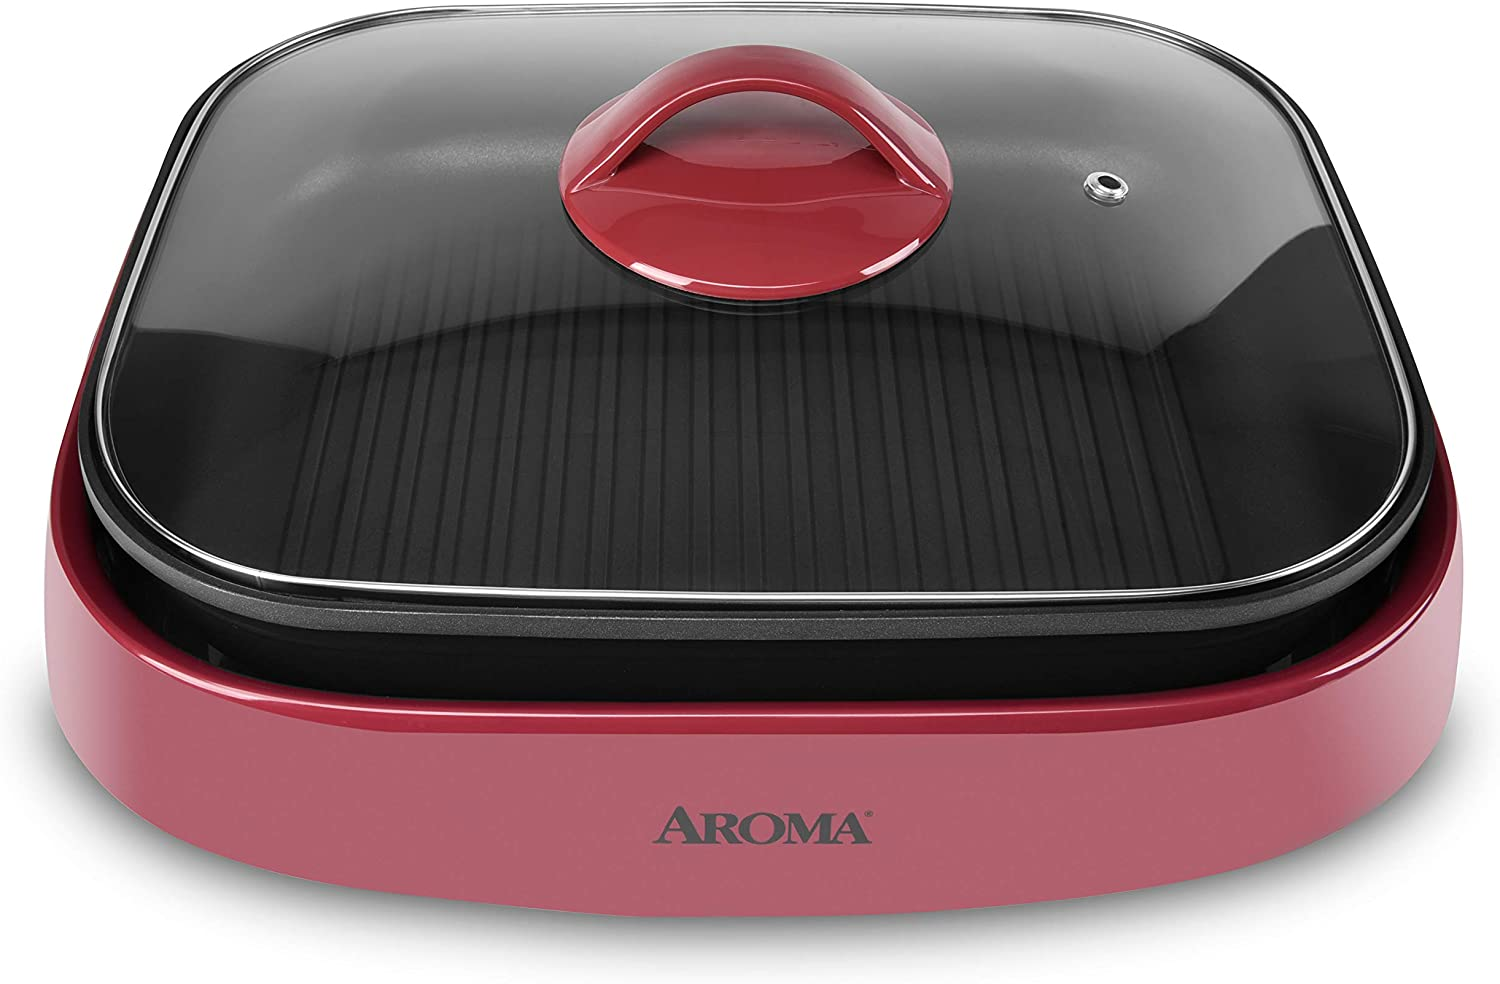 Aroma Housewares ASP-266R Indoor Grill, multi-use pot, skillet, 6-Quart, Red